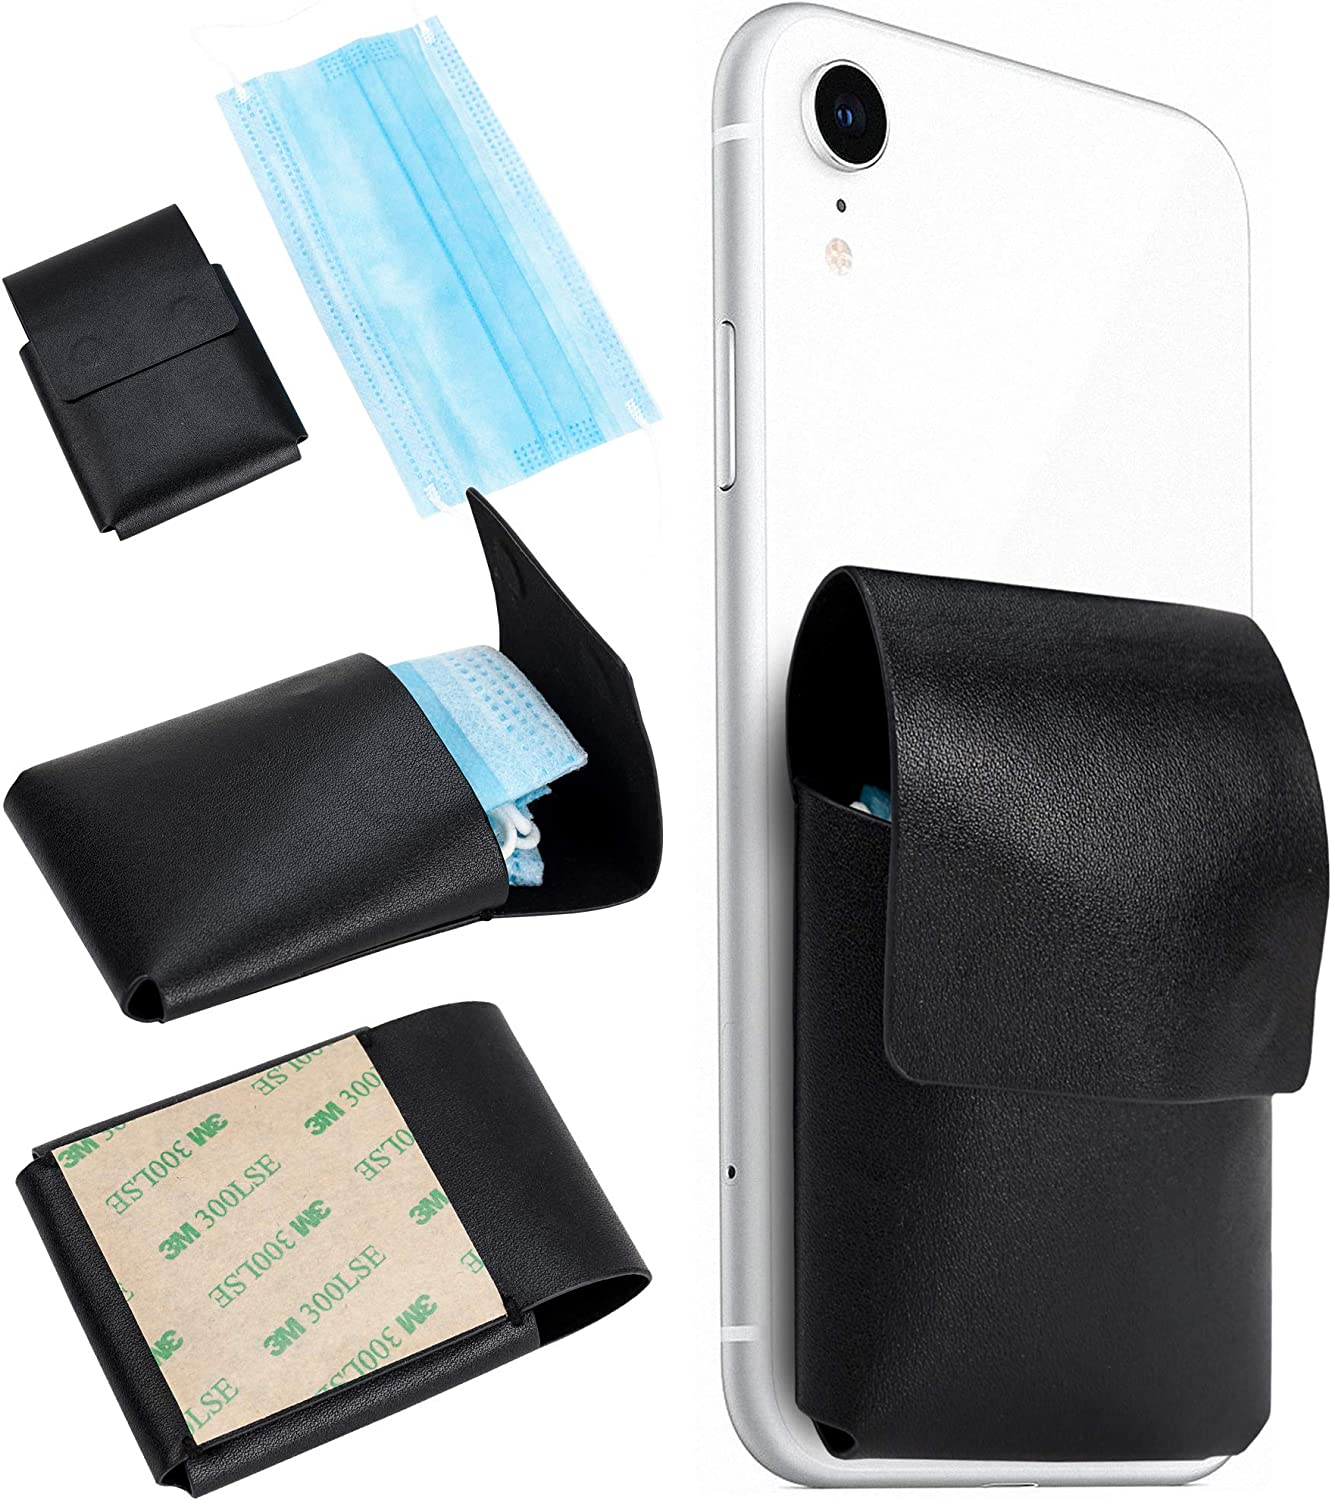 Portable Face Mask Case Max 79% OFF Leather It is very popular - Holder Bag